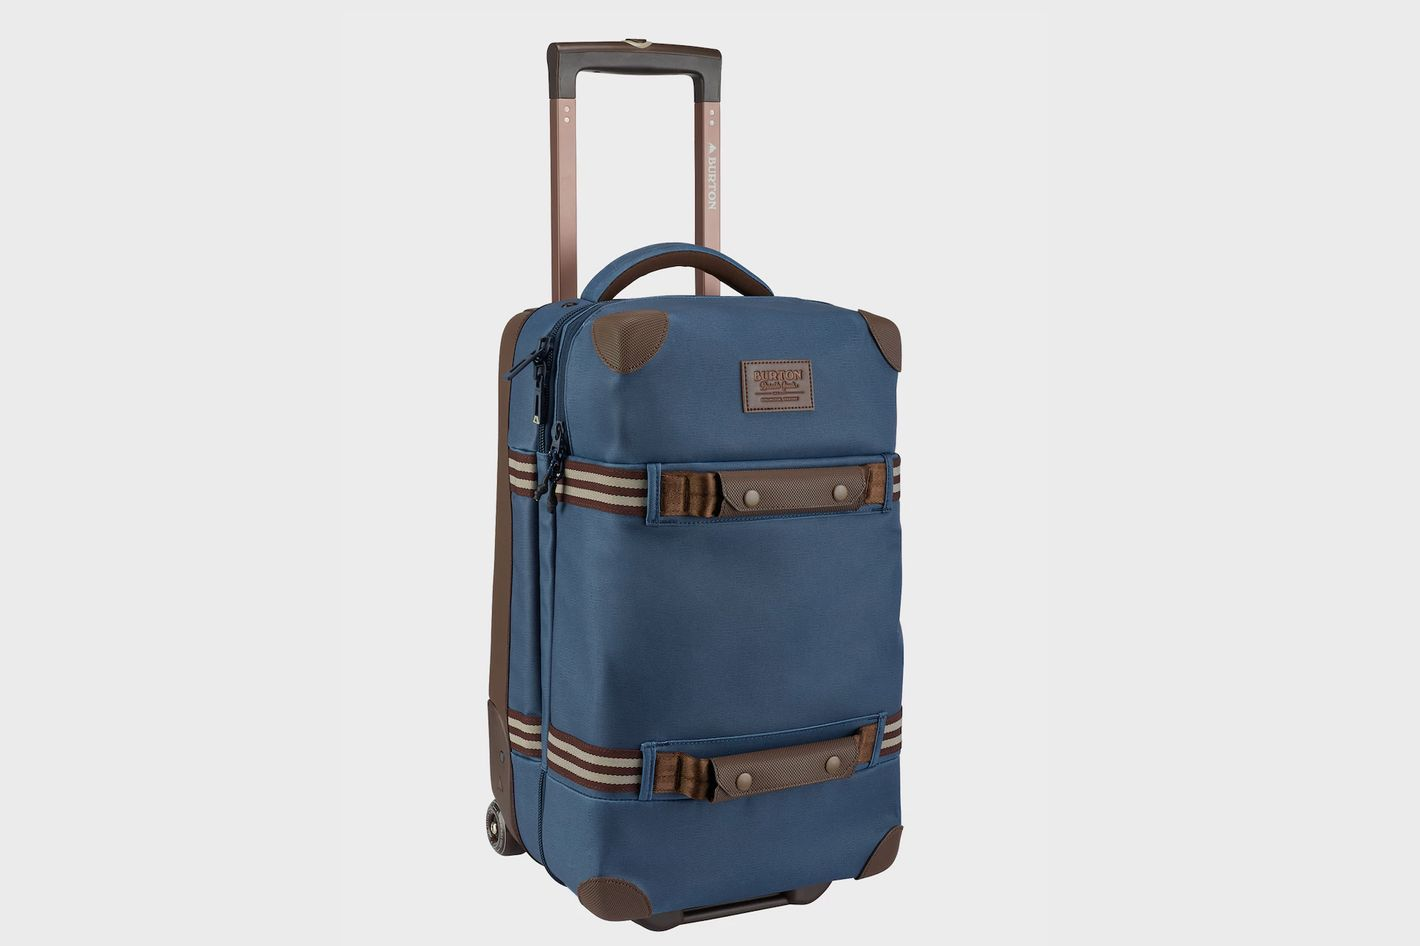 14 Best Rolling Carry On Luggage 2018 cfd55235fae75